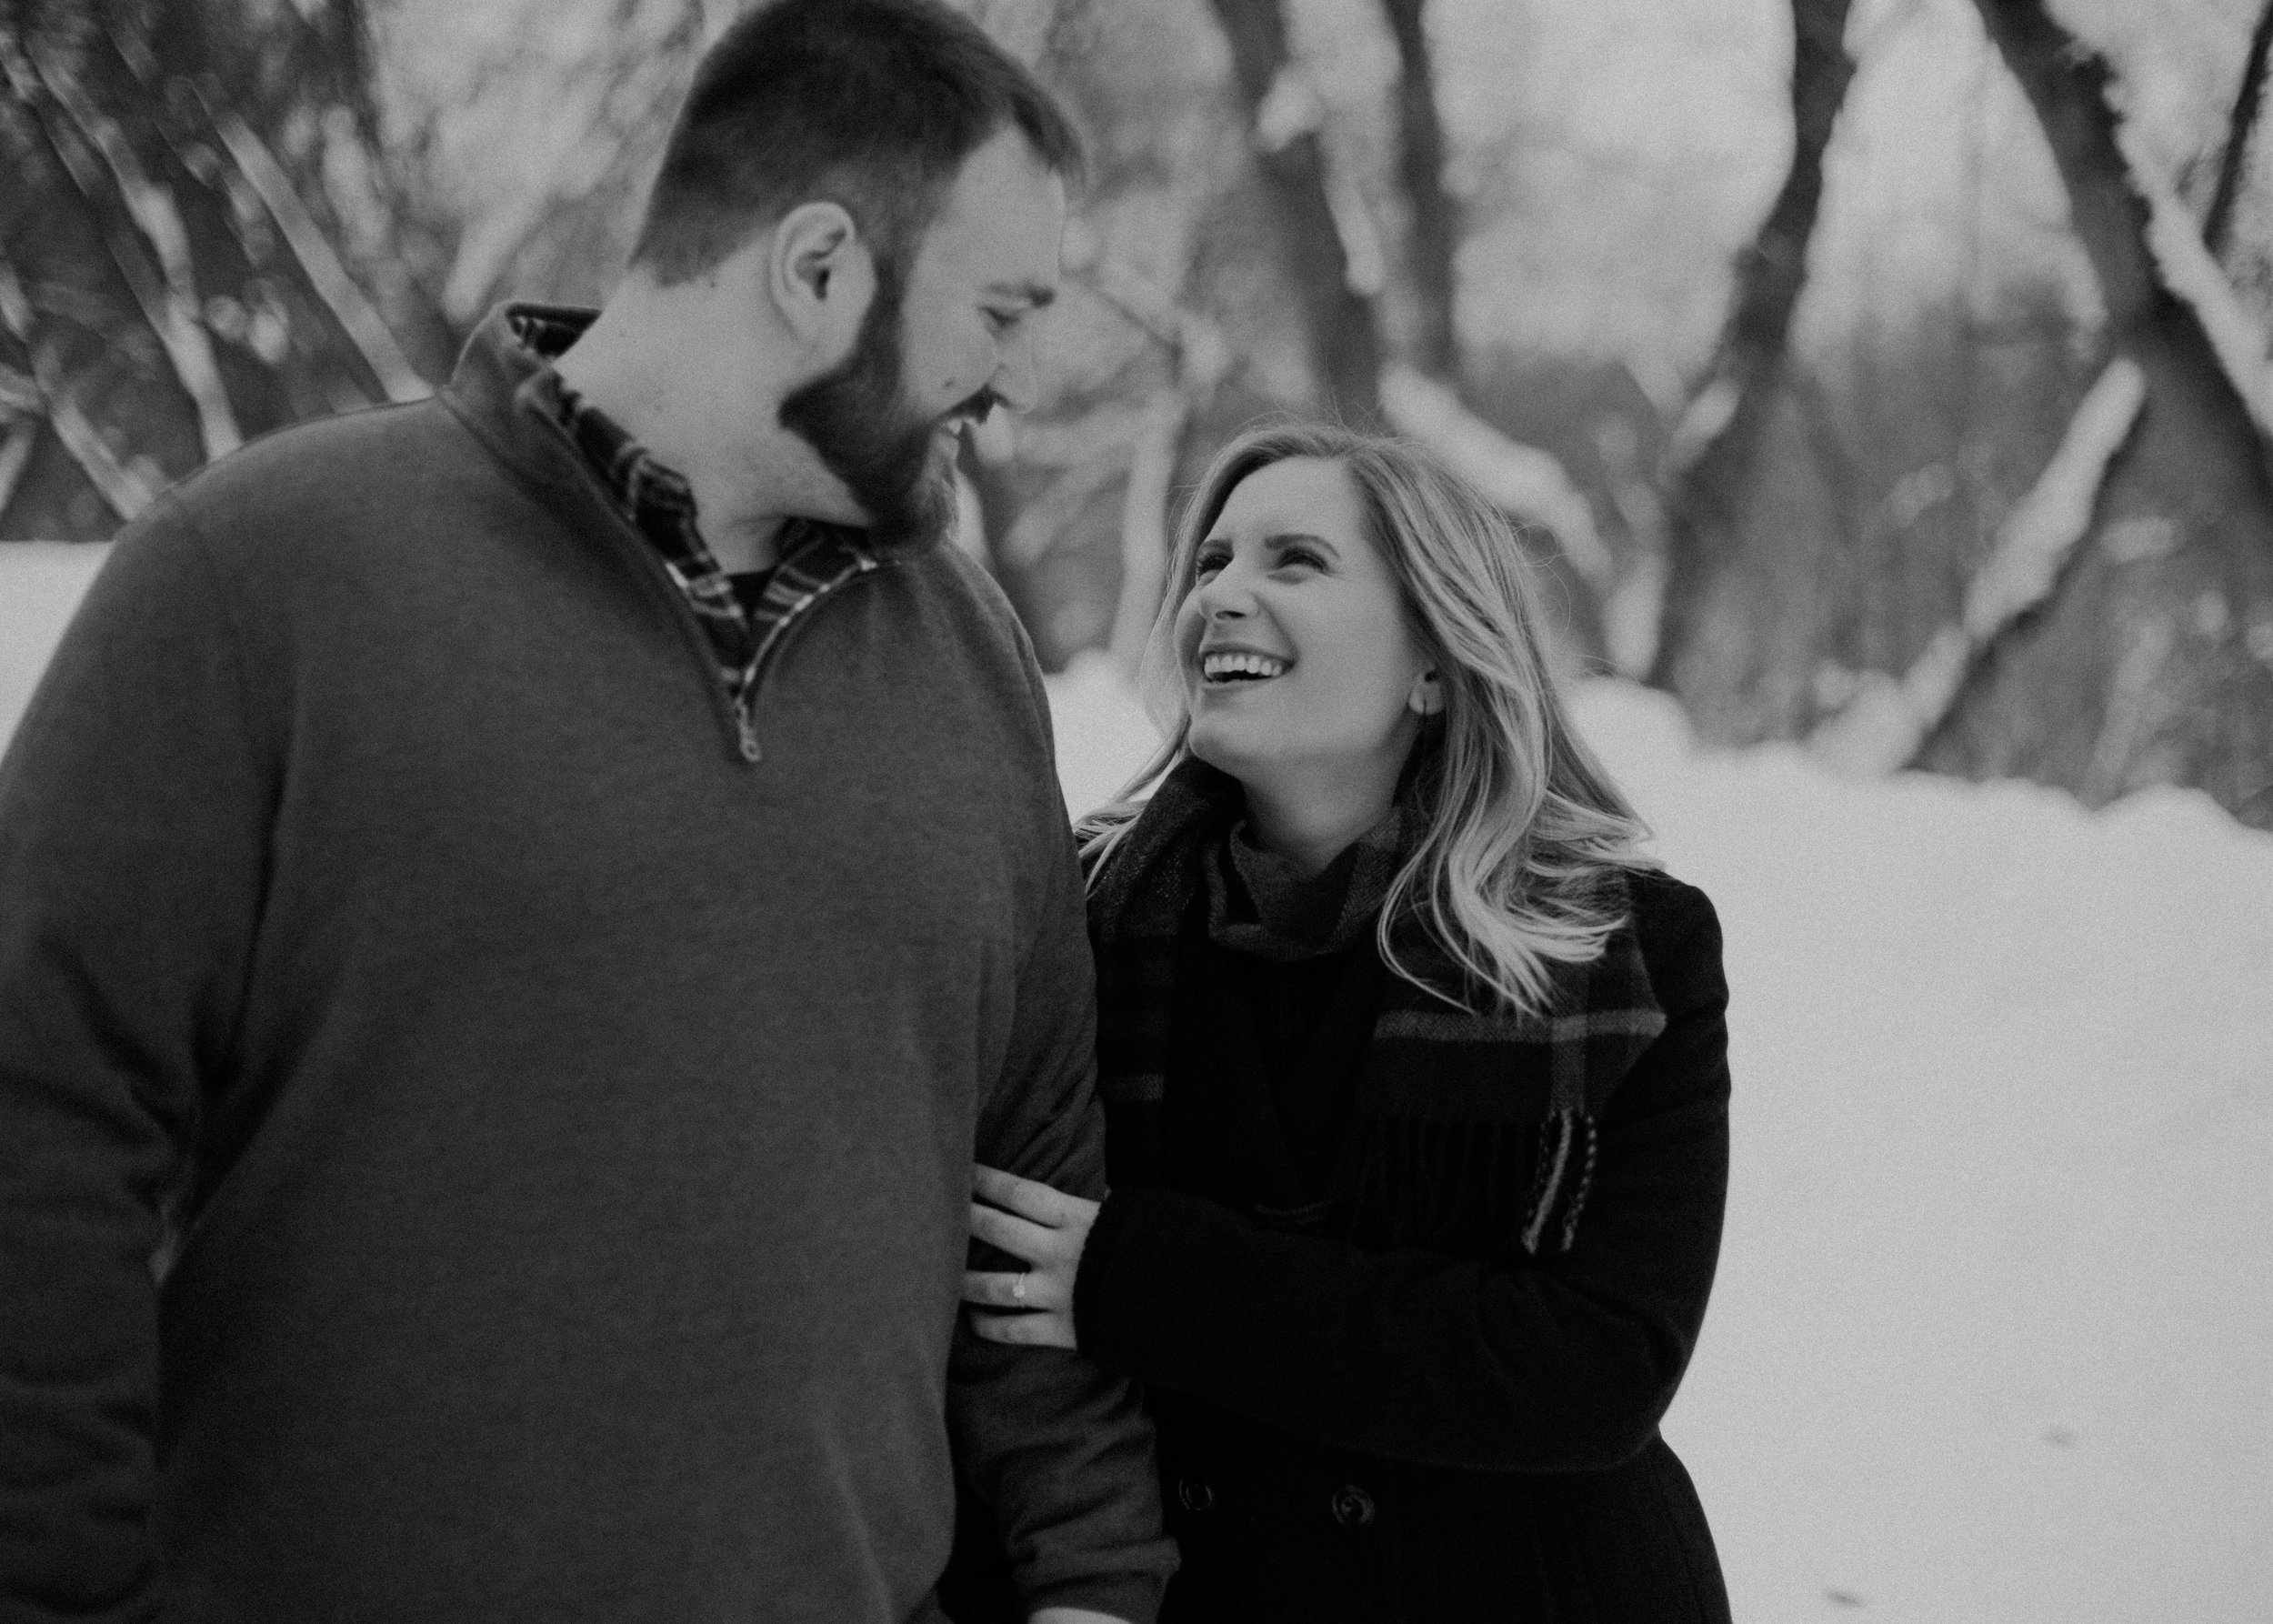 winter wonderland engagement session in Athens WI in February